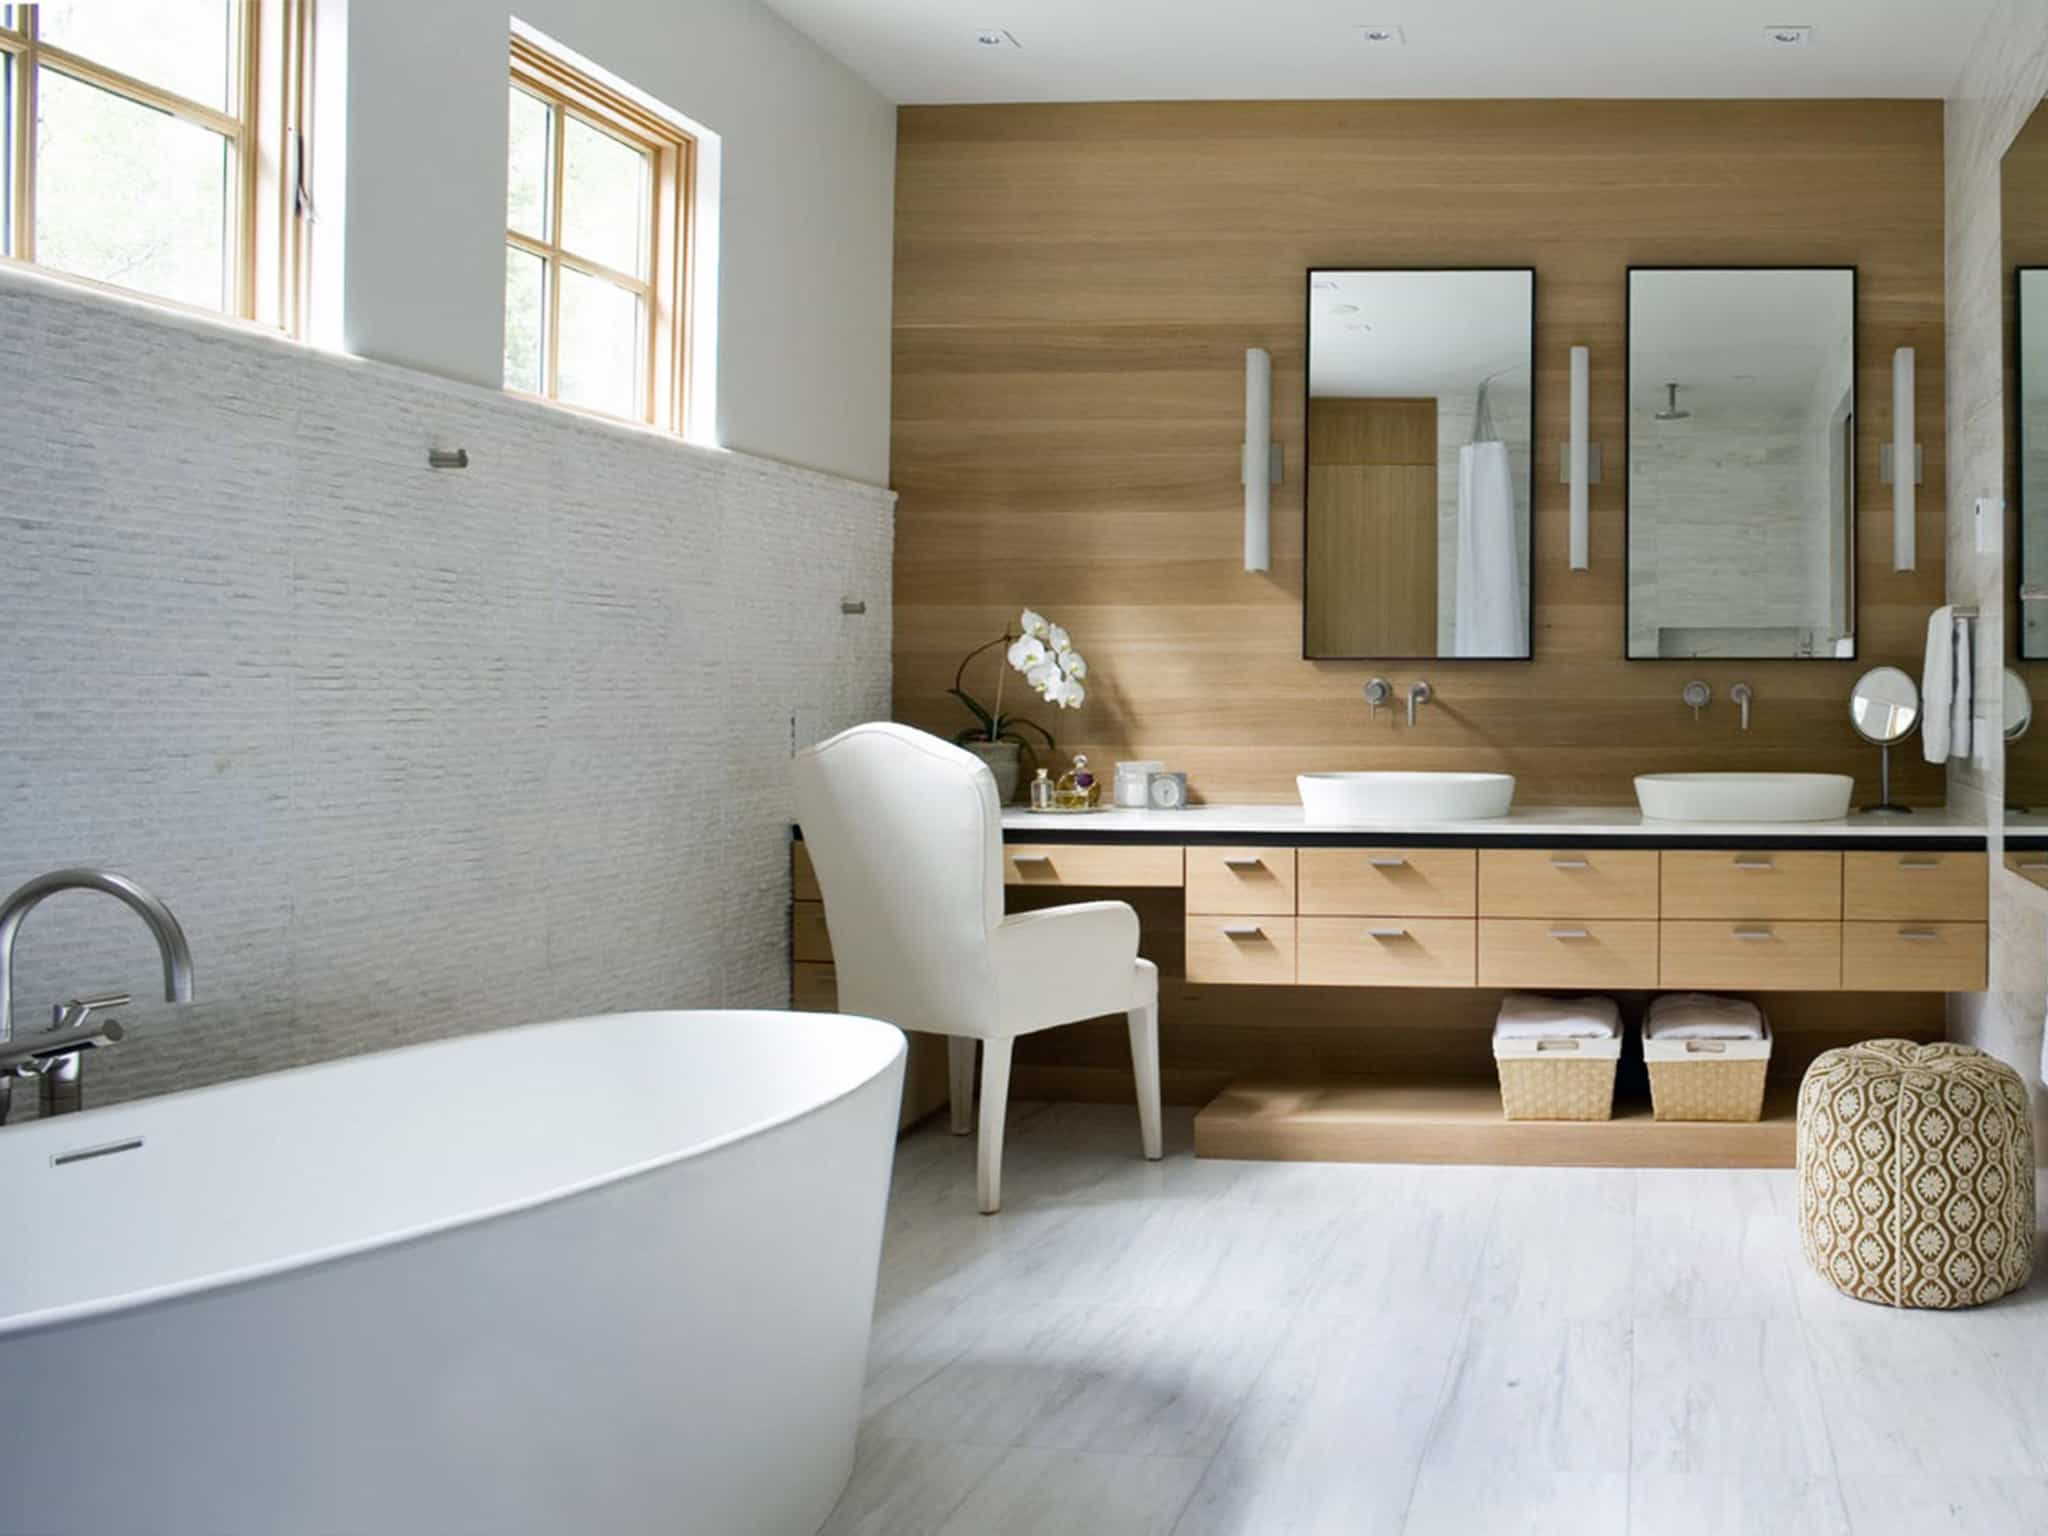 Minimalist Spa Style Bathroom Interior Furniture And Decor (Image 21 of 29)